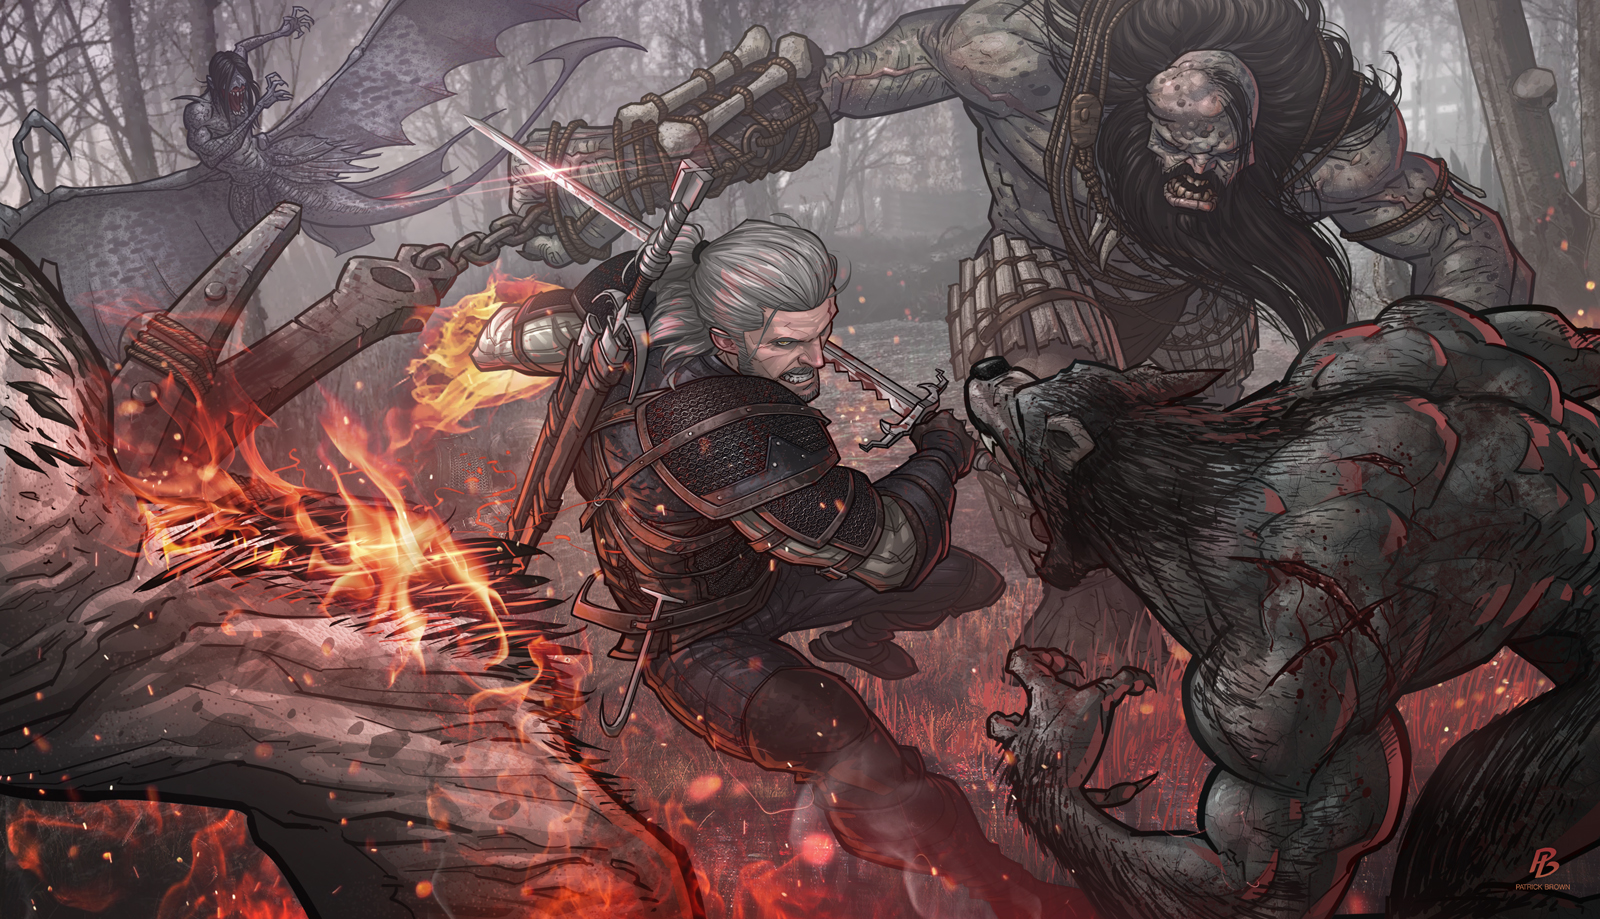 The Witcher 3 By PatrickBrown On DeviantArt